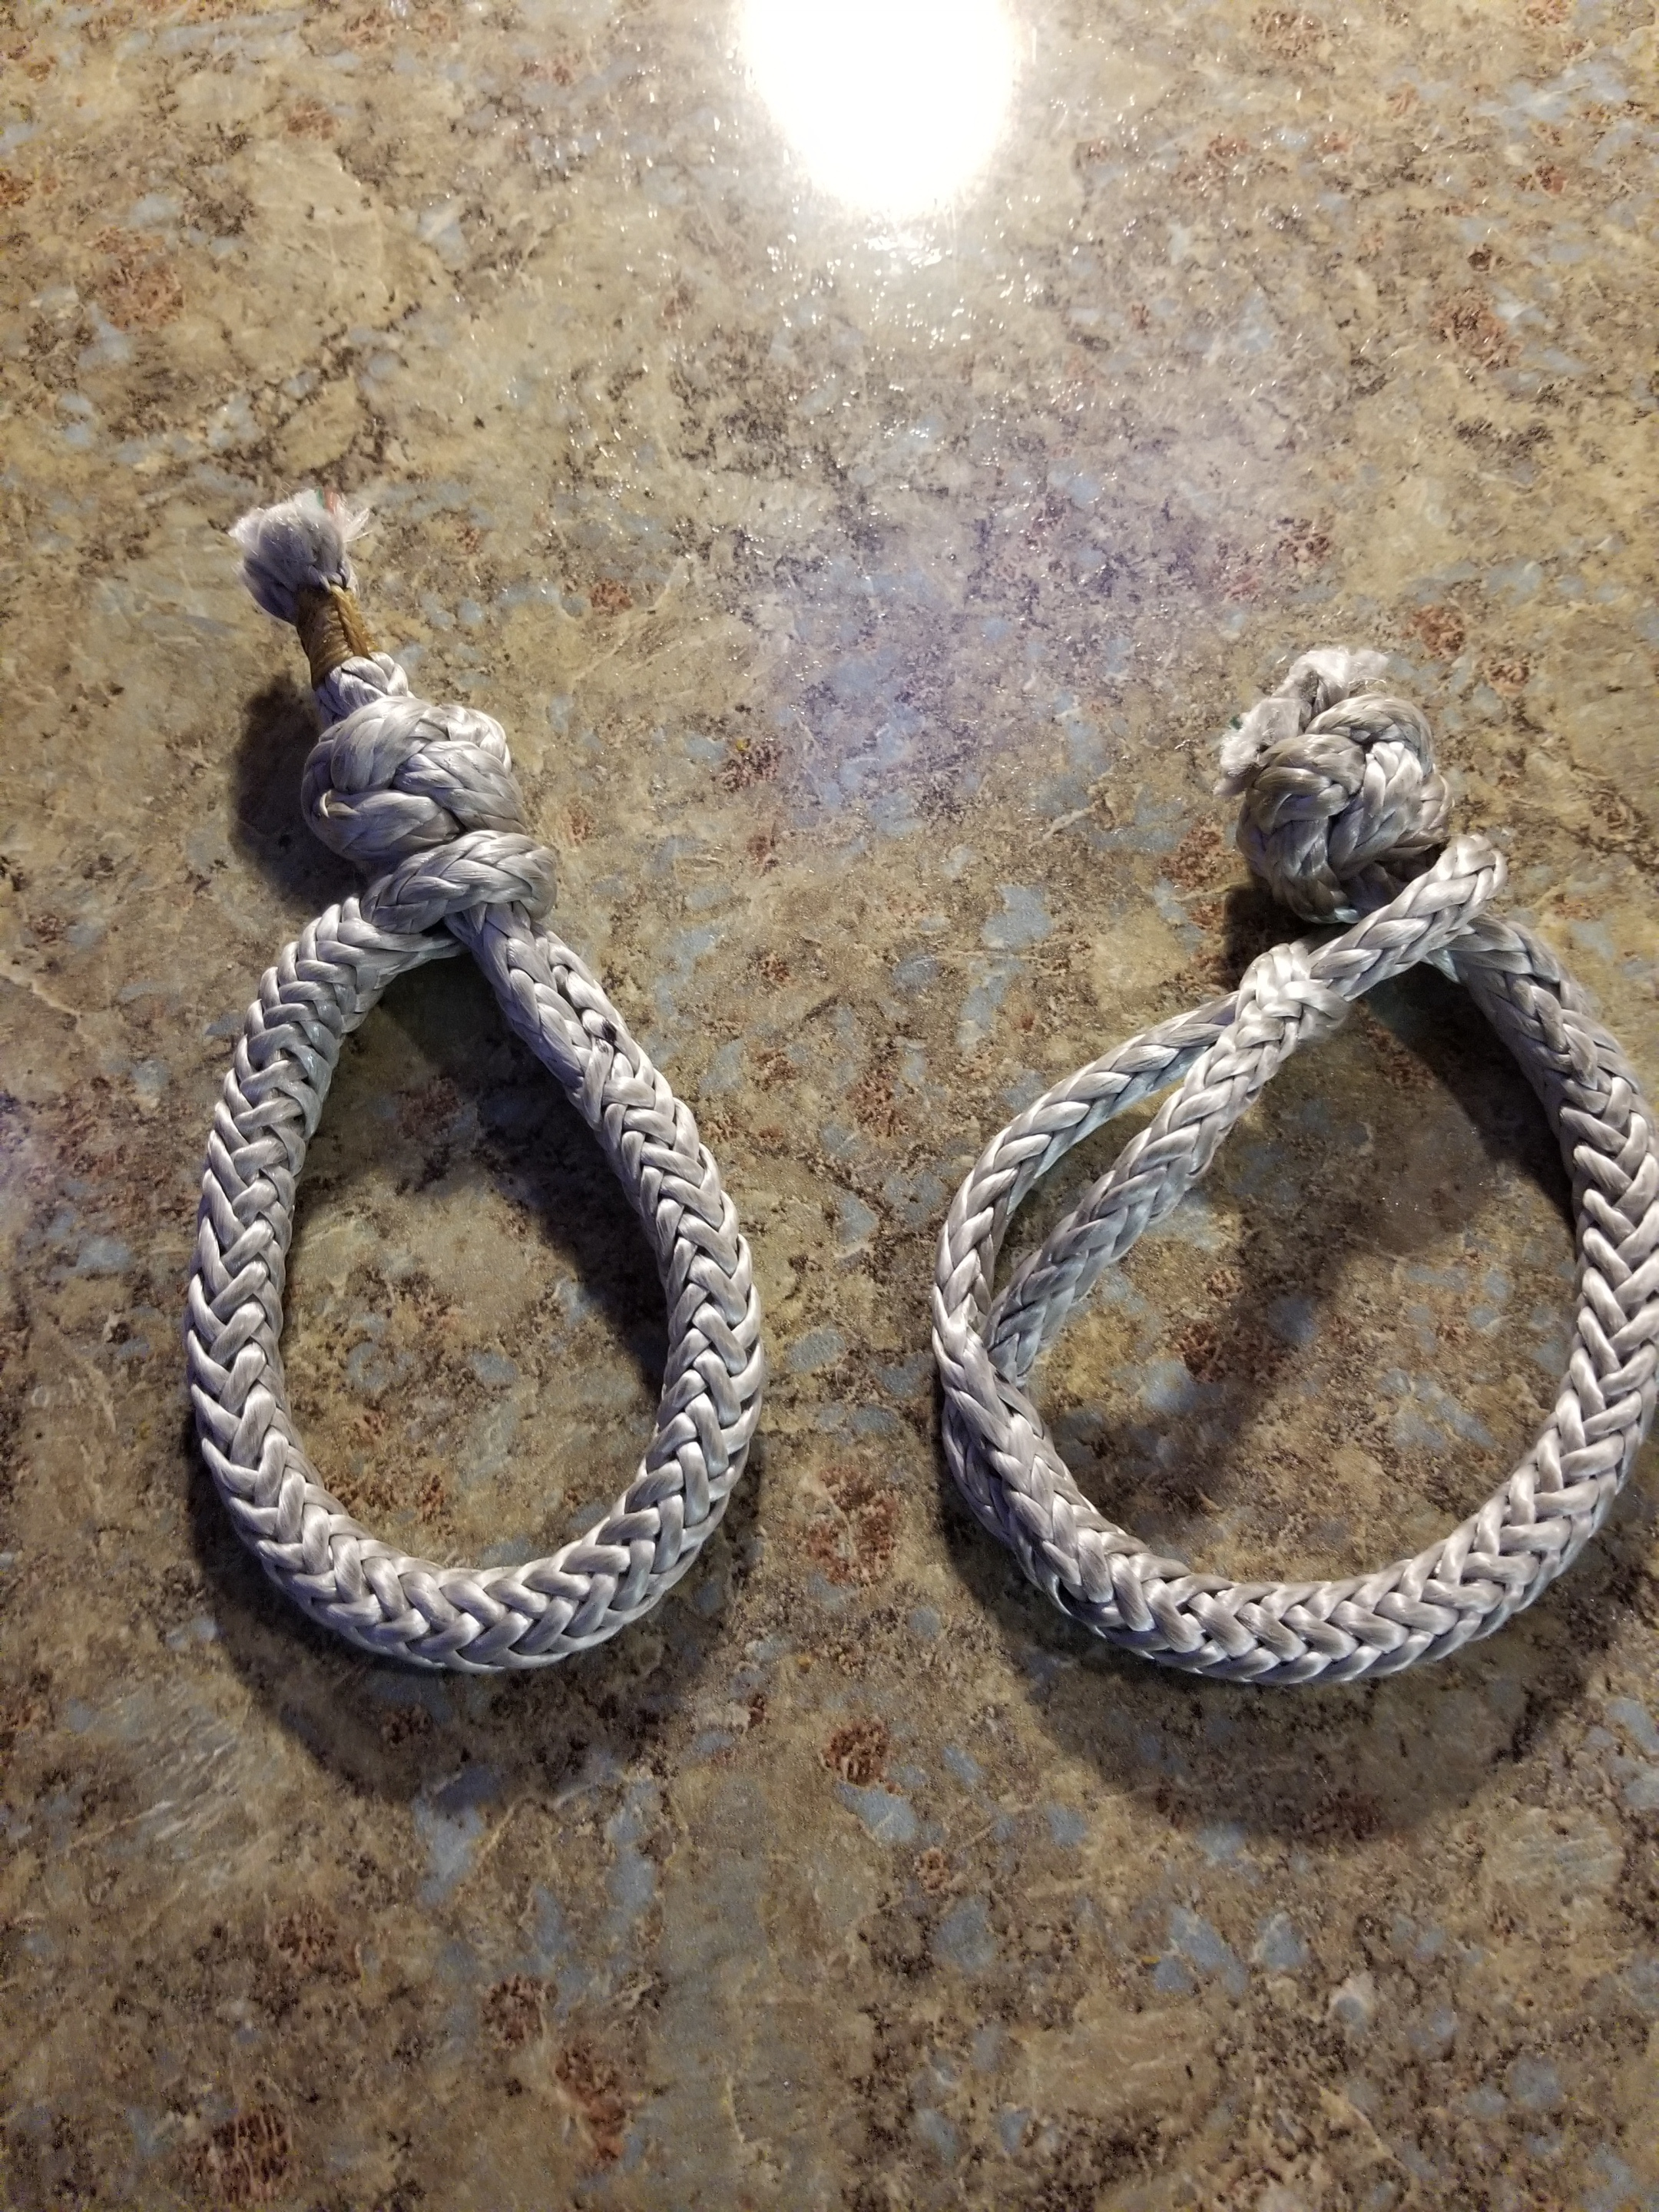 Side-by-side, a standard soft shackle (on left)  and an Edwards soft shackle (on right).  The Edwards soft shackle is reportedly eaiser to undo after it's seen a load.  We'll test both.